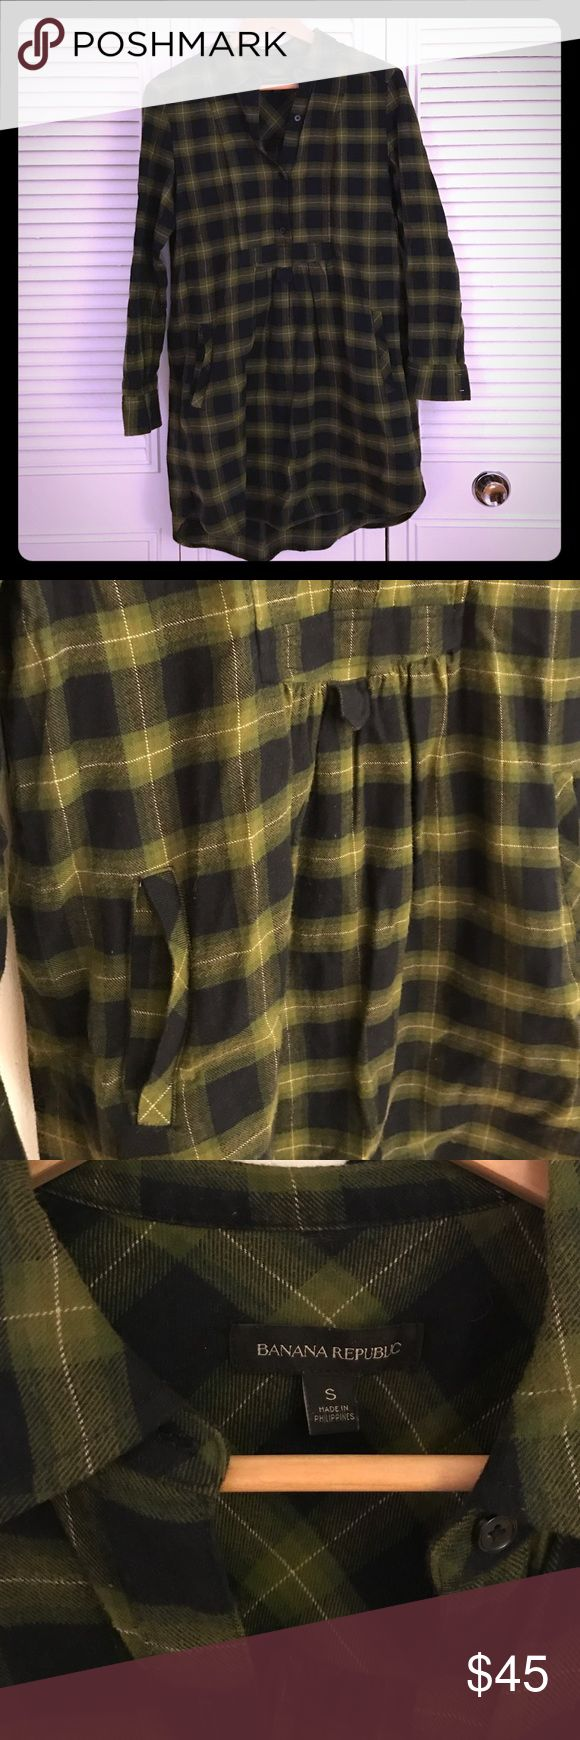 Banana Republic Flannel Shirt Dress with Pockets! Navy and green Banana Republic plaid flannel shirt dress, with pockets! Great with tights or leggings and a cute belt. So warm!! Great condition. Only wore a few times, and it's surprisingly high quality item! Banana Republic Dresses Mini